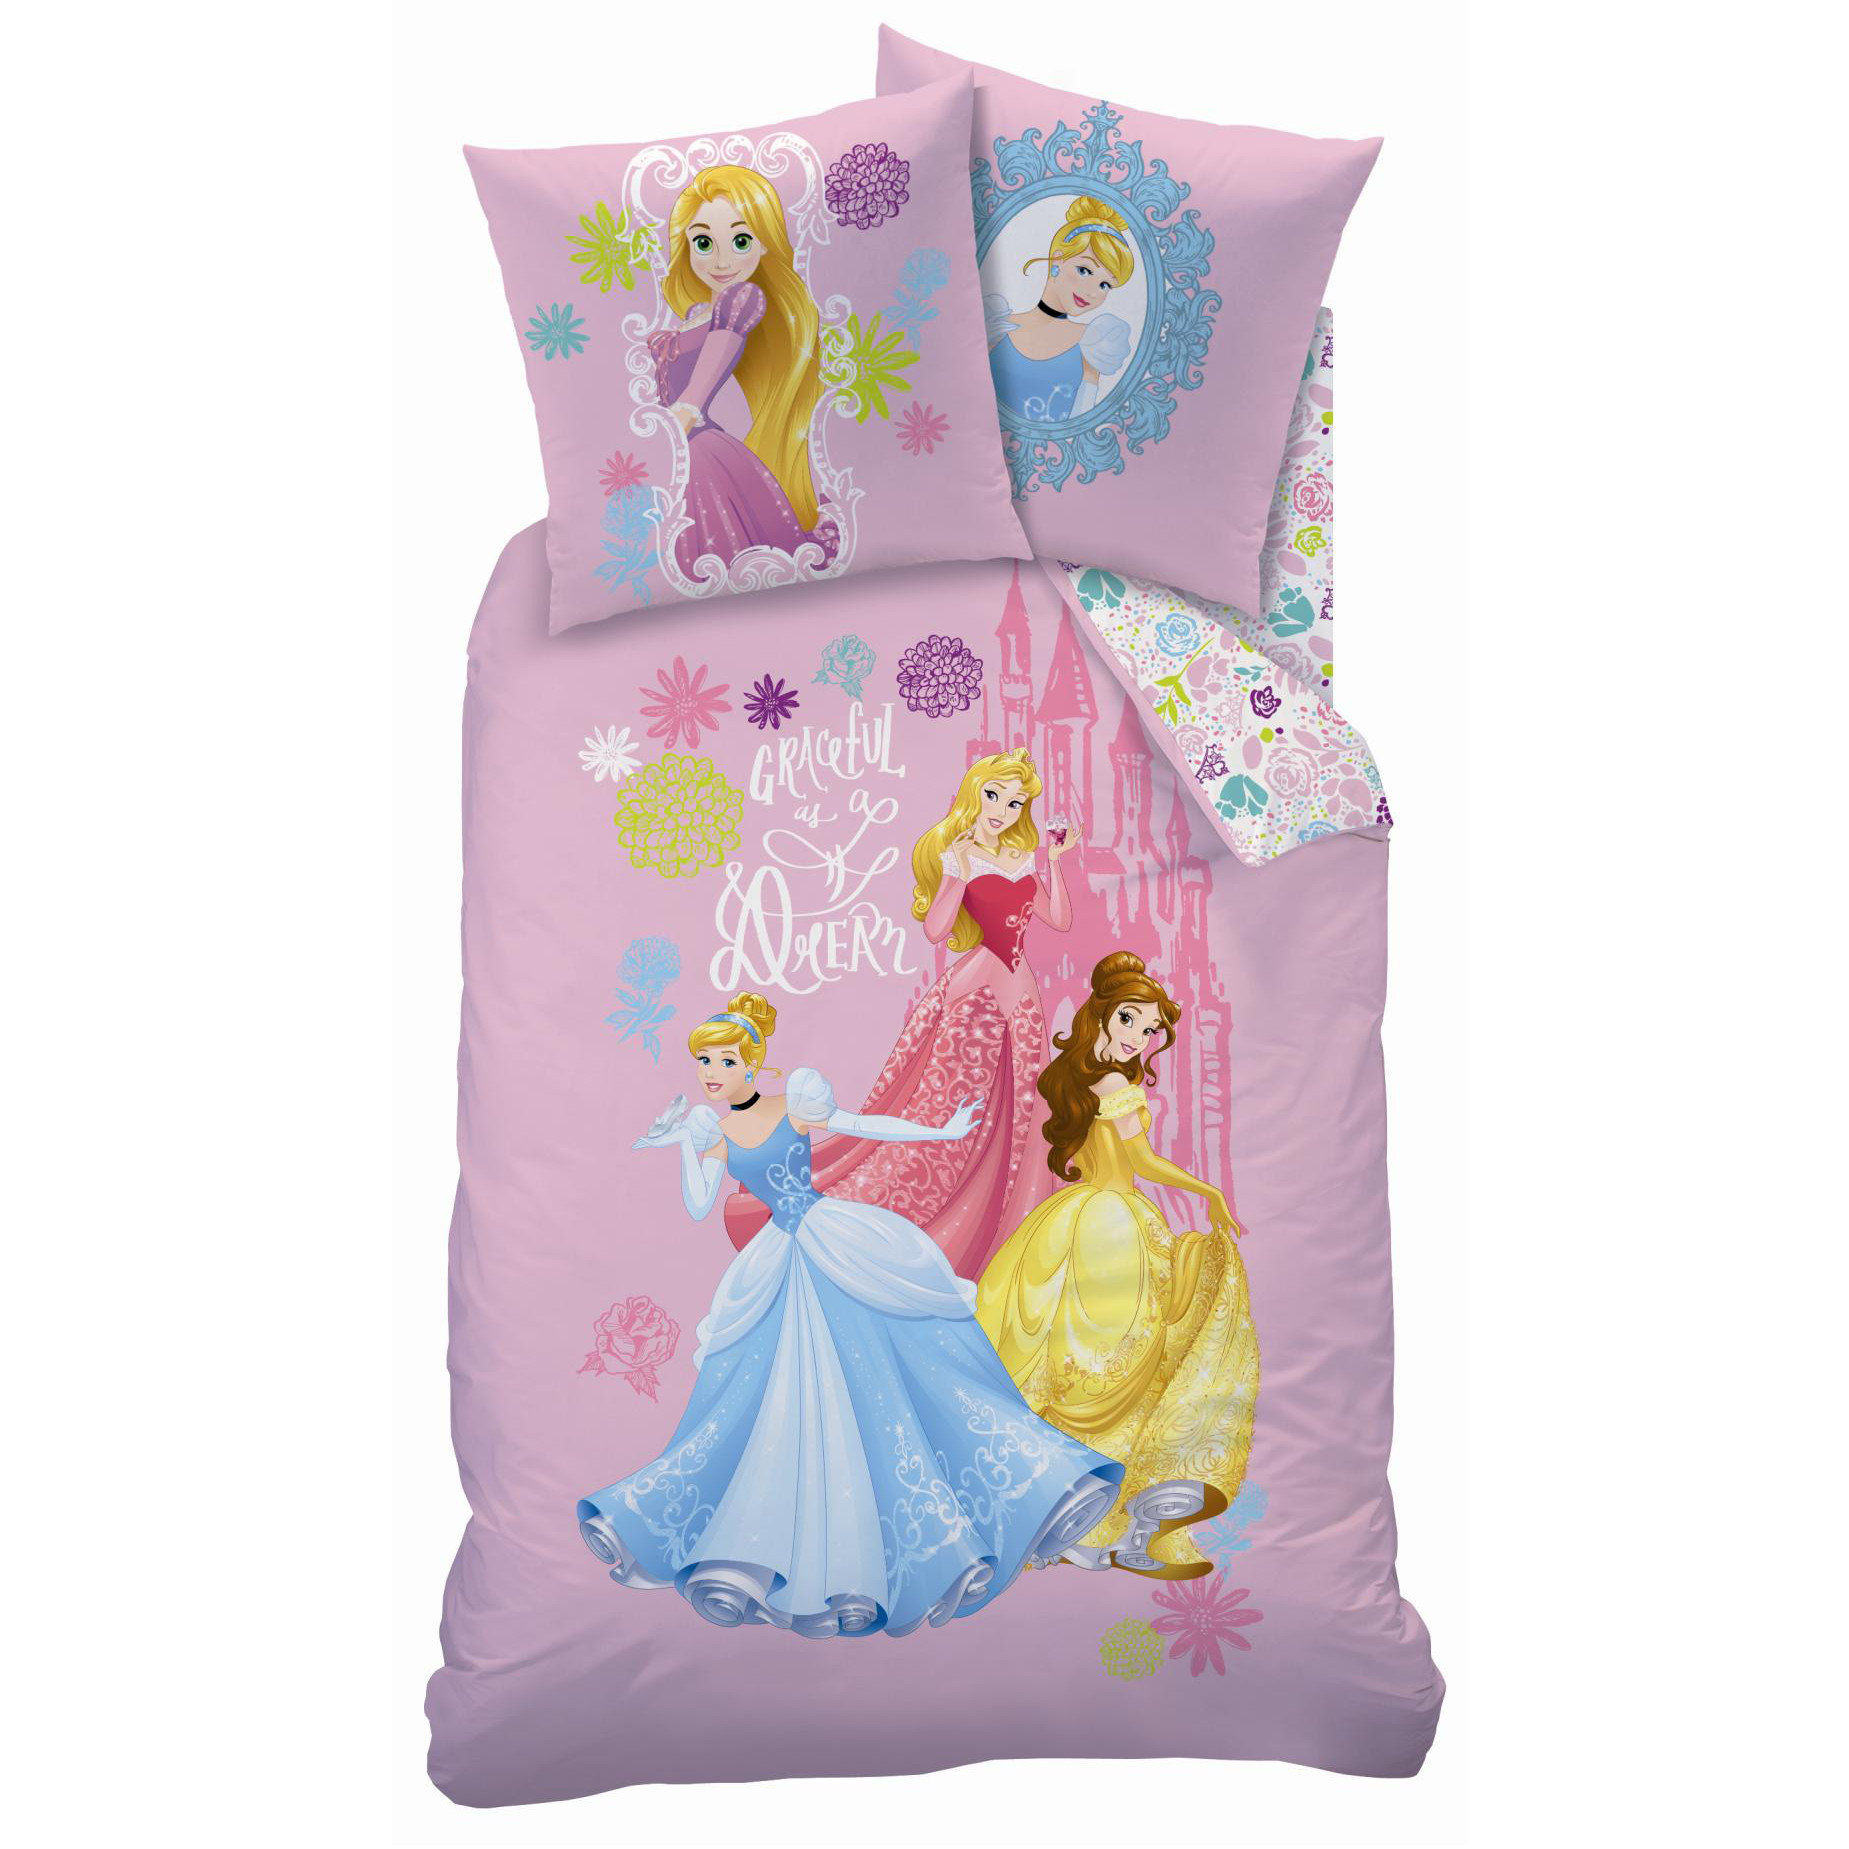 princesses graceful parure 140 x 200 plc r f dpr432514 disney princesses decokids. Black Bedroom Furniture Sets. Home Design Ideas